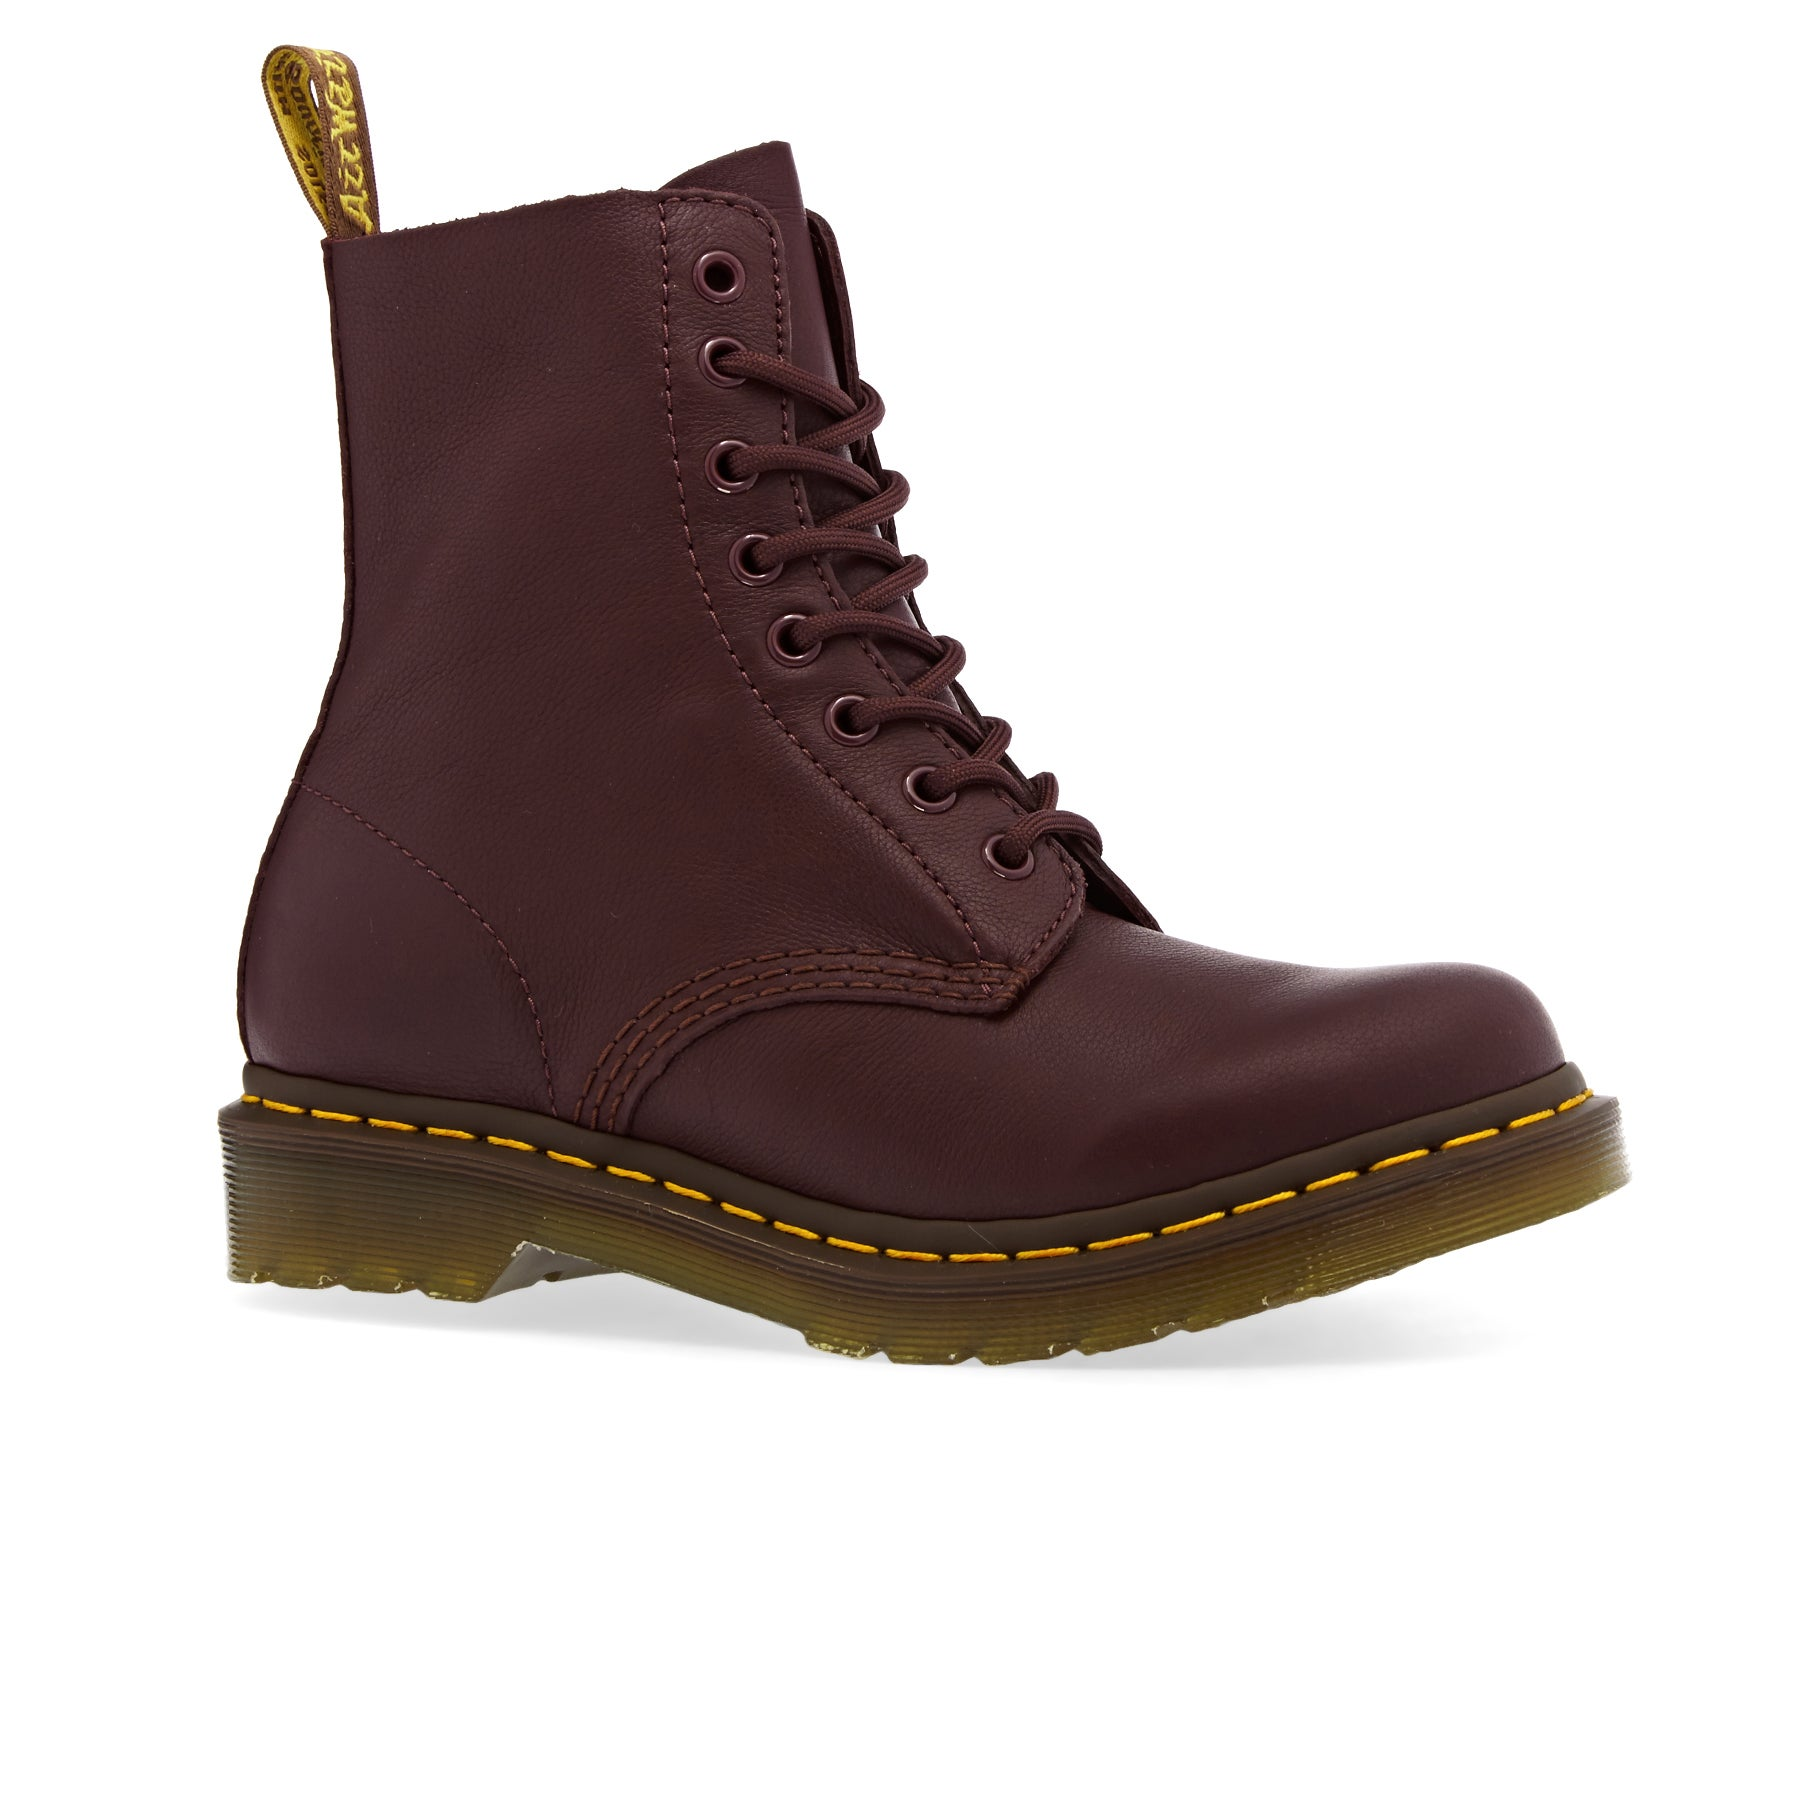 Dr Martens 1460 Pascal Womens Boots - Cherry Red Virginia